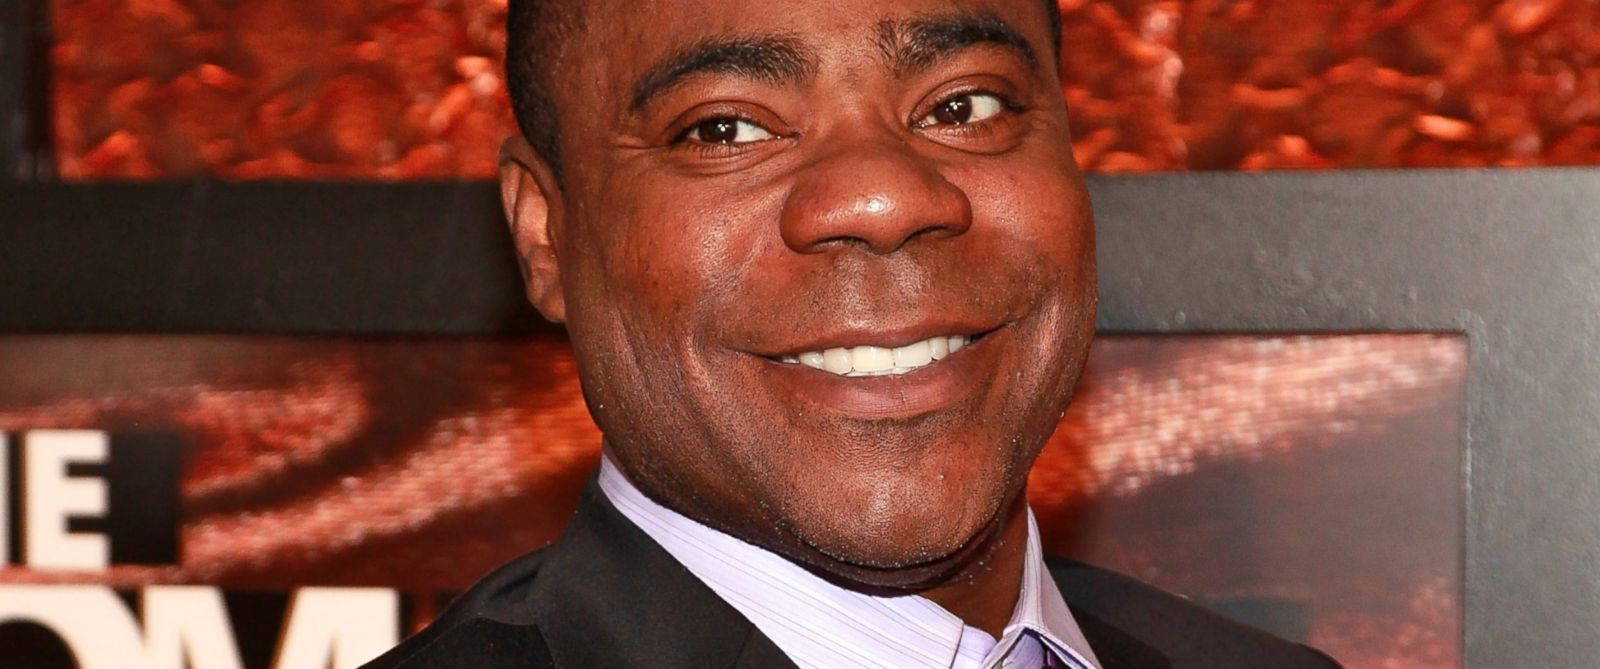 PHOTO: Comedian Tracy Morgan attends the First Annual Comedy Awards at Hammerstein Ballroom on March 26, 2011 in New York City.